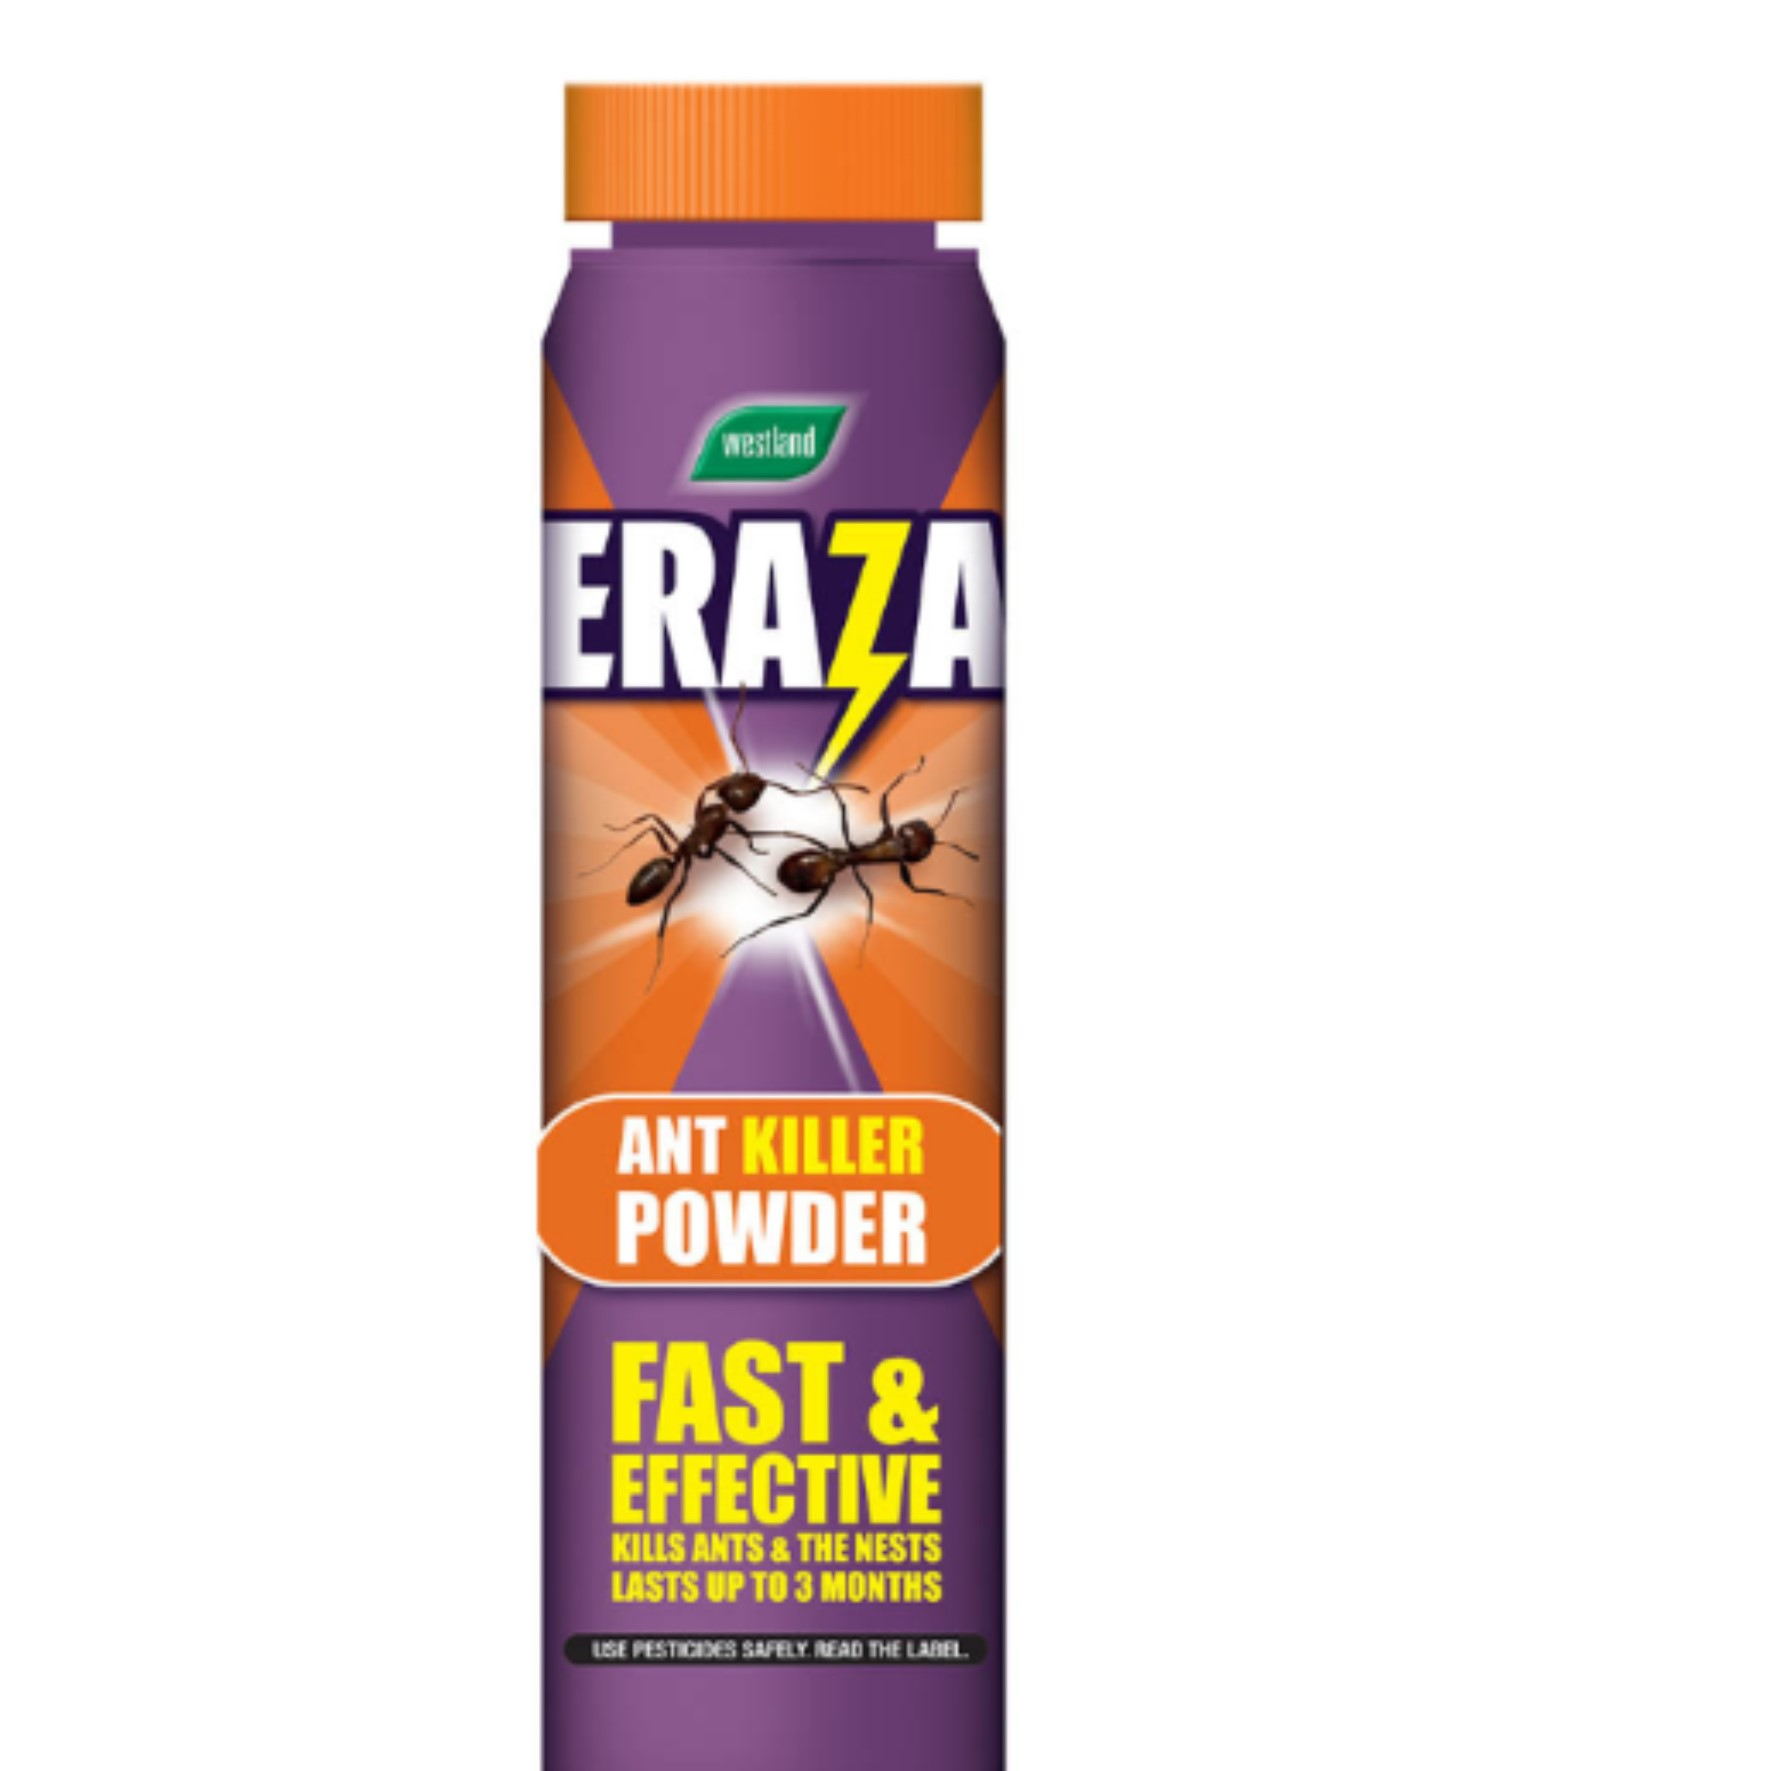 Eraza Ant Killer Powder